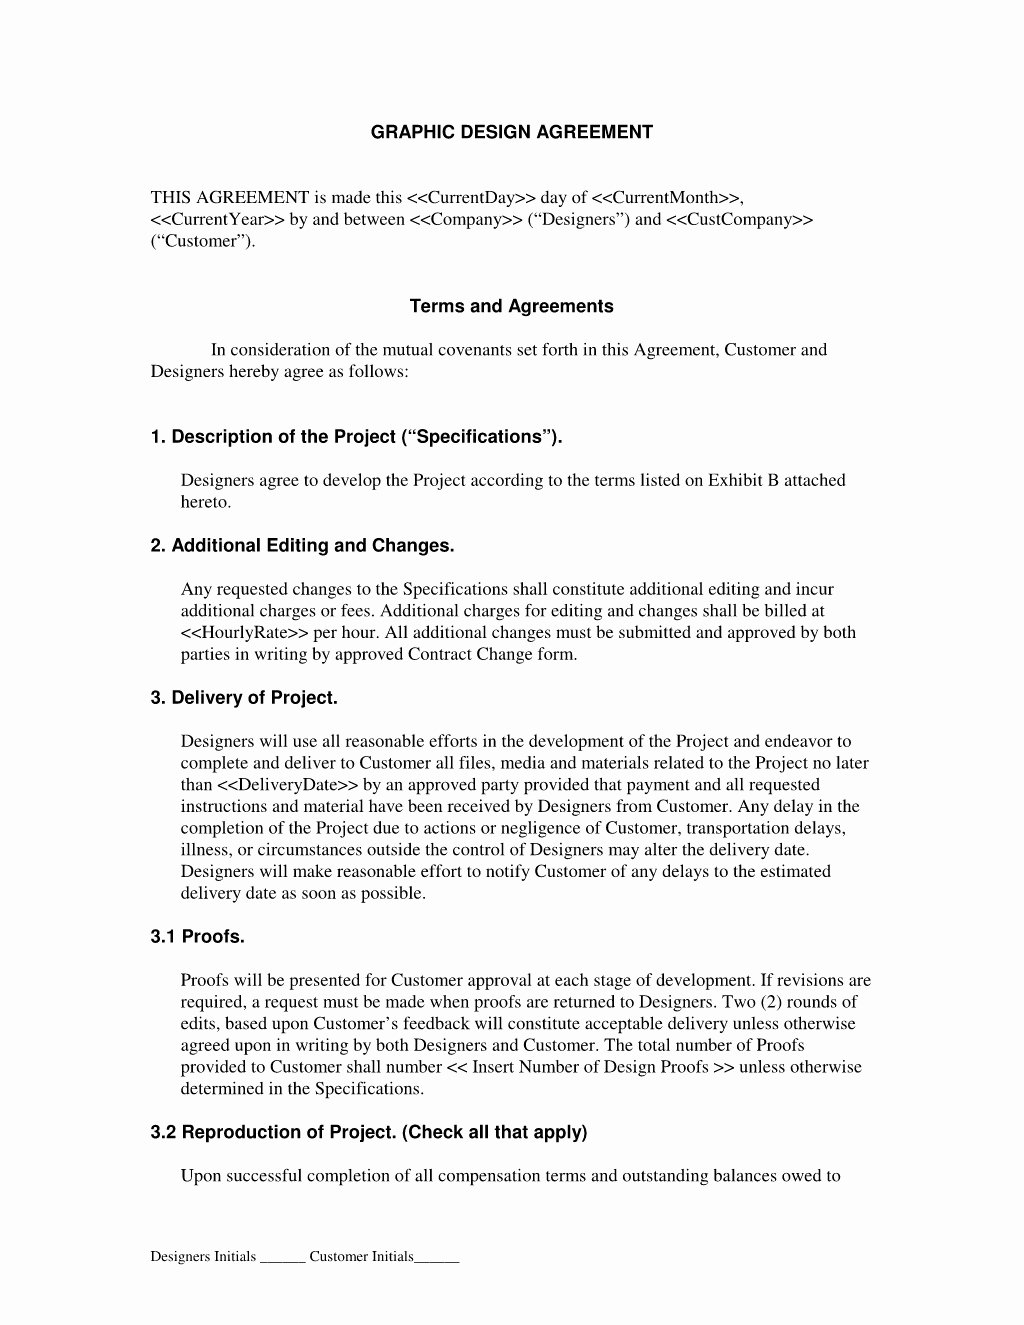 Graphic Design Contract Template Pdf Inspirational Graphic Design Contract Agreement